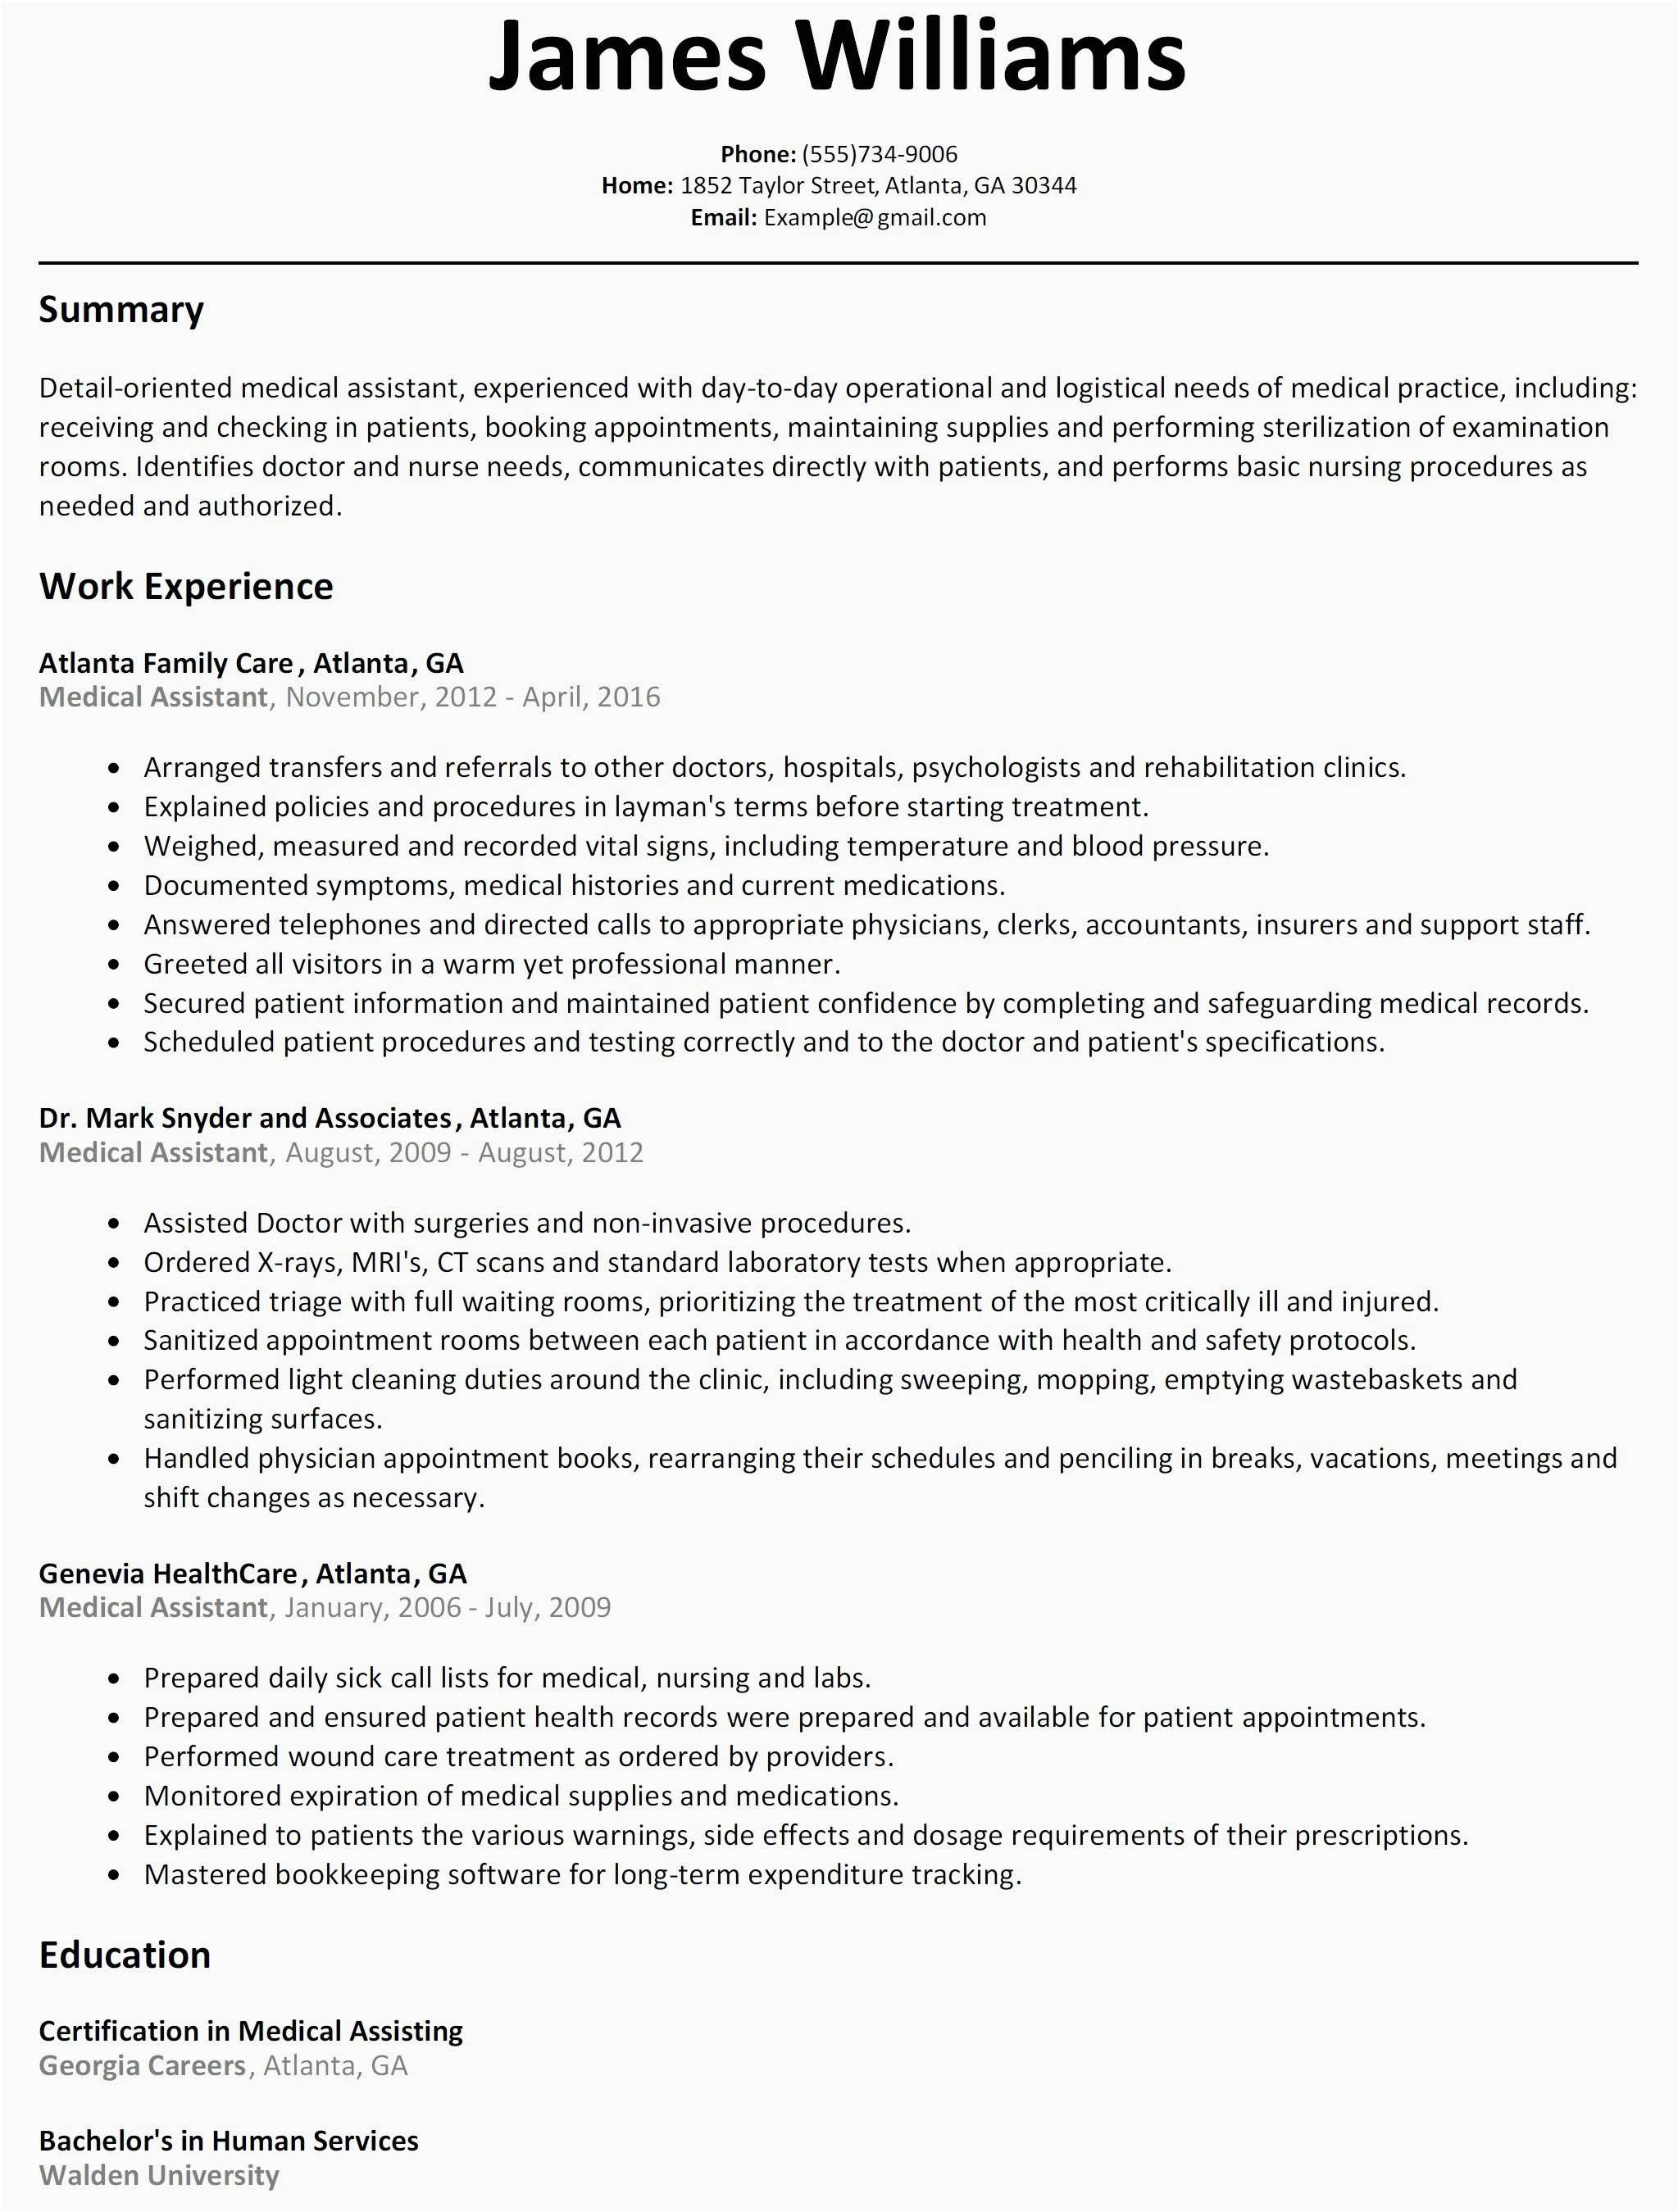 Electrician Resume Template - 66 Liveable Electrician Resume Template Occupylondonsos